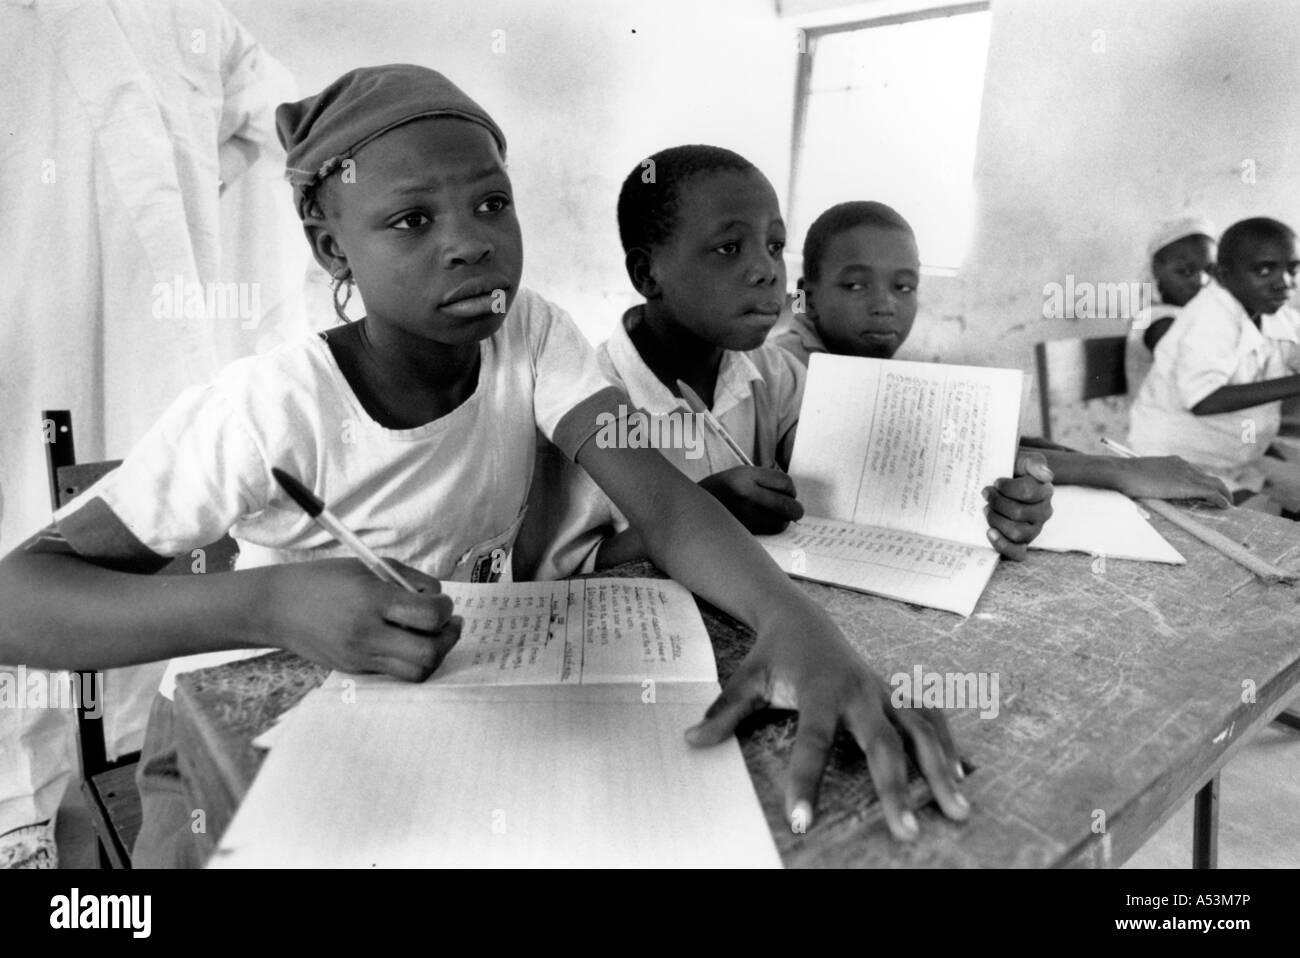 Painet ha1377 191 black and white schools school children bauchi nigeria country developing nation less economically - Stock Image